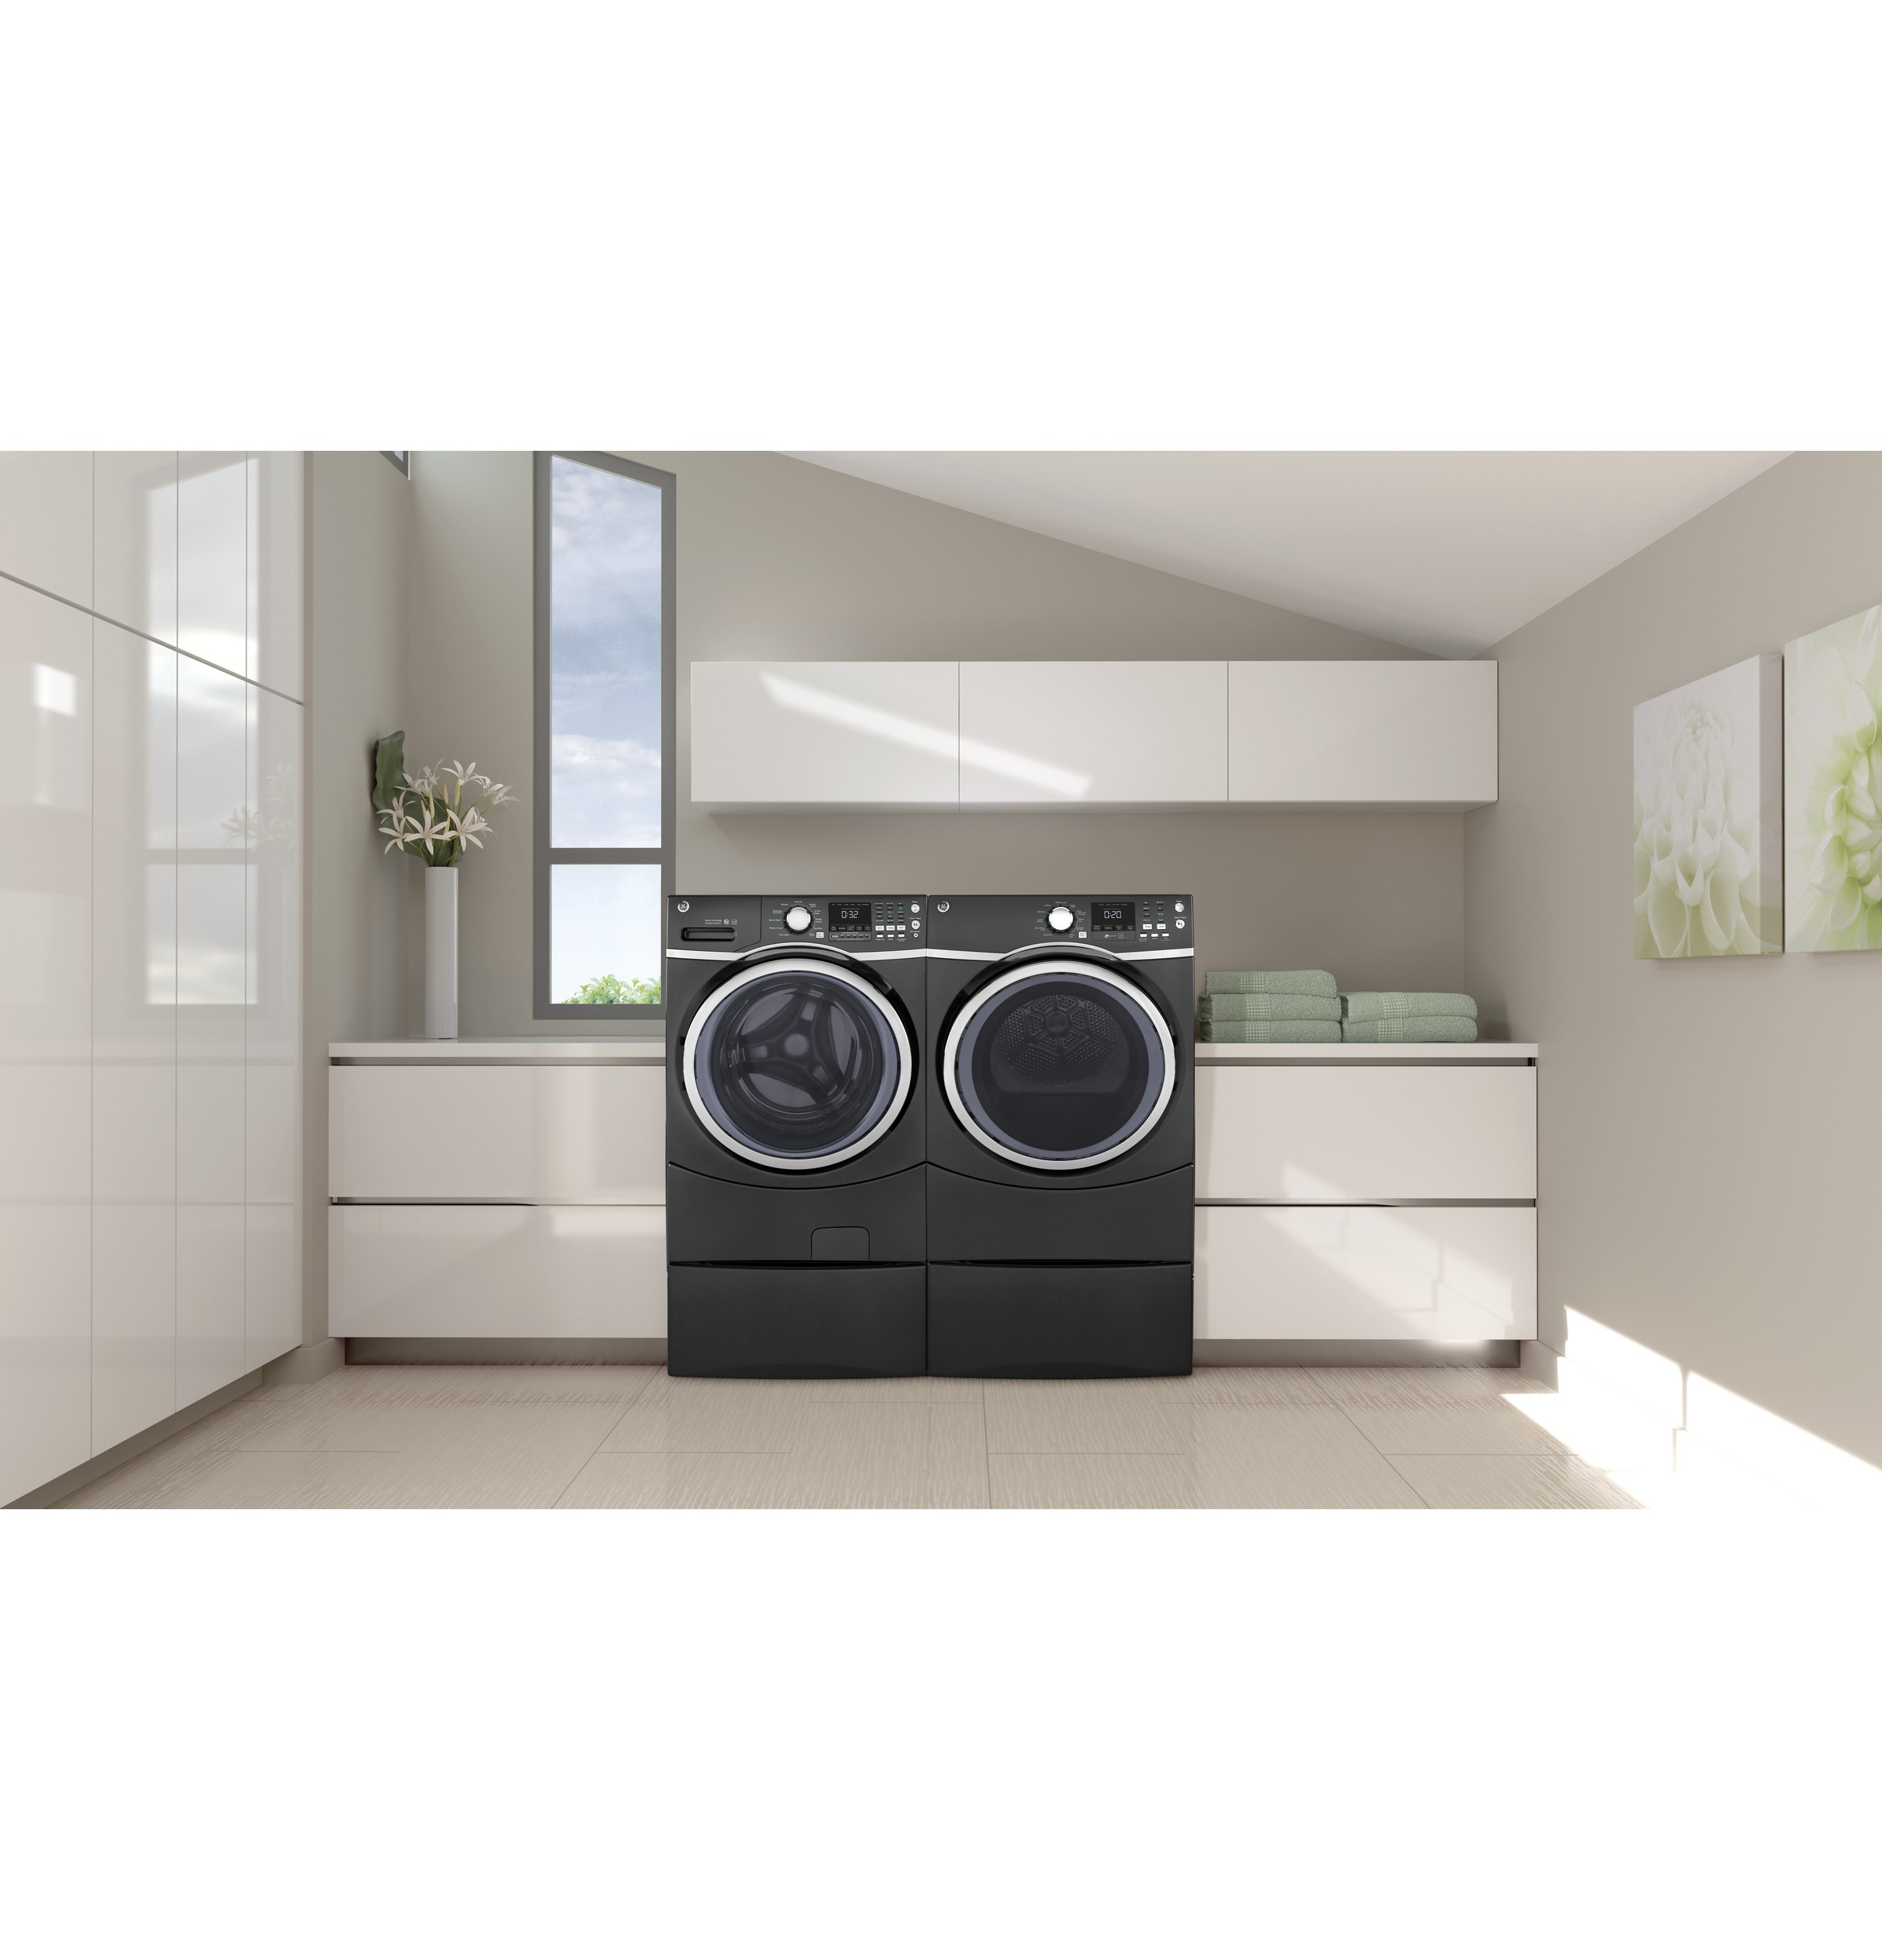 Model: GFW450SPMDG | GE® 4.5 cu. ft. Capacity Front Load ENERGY STAR® Washer with Steam